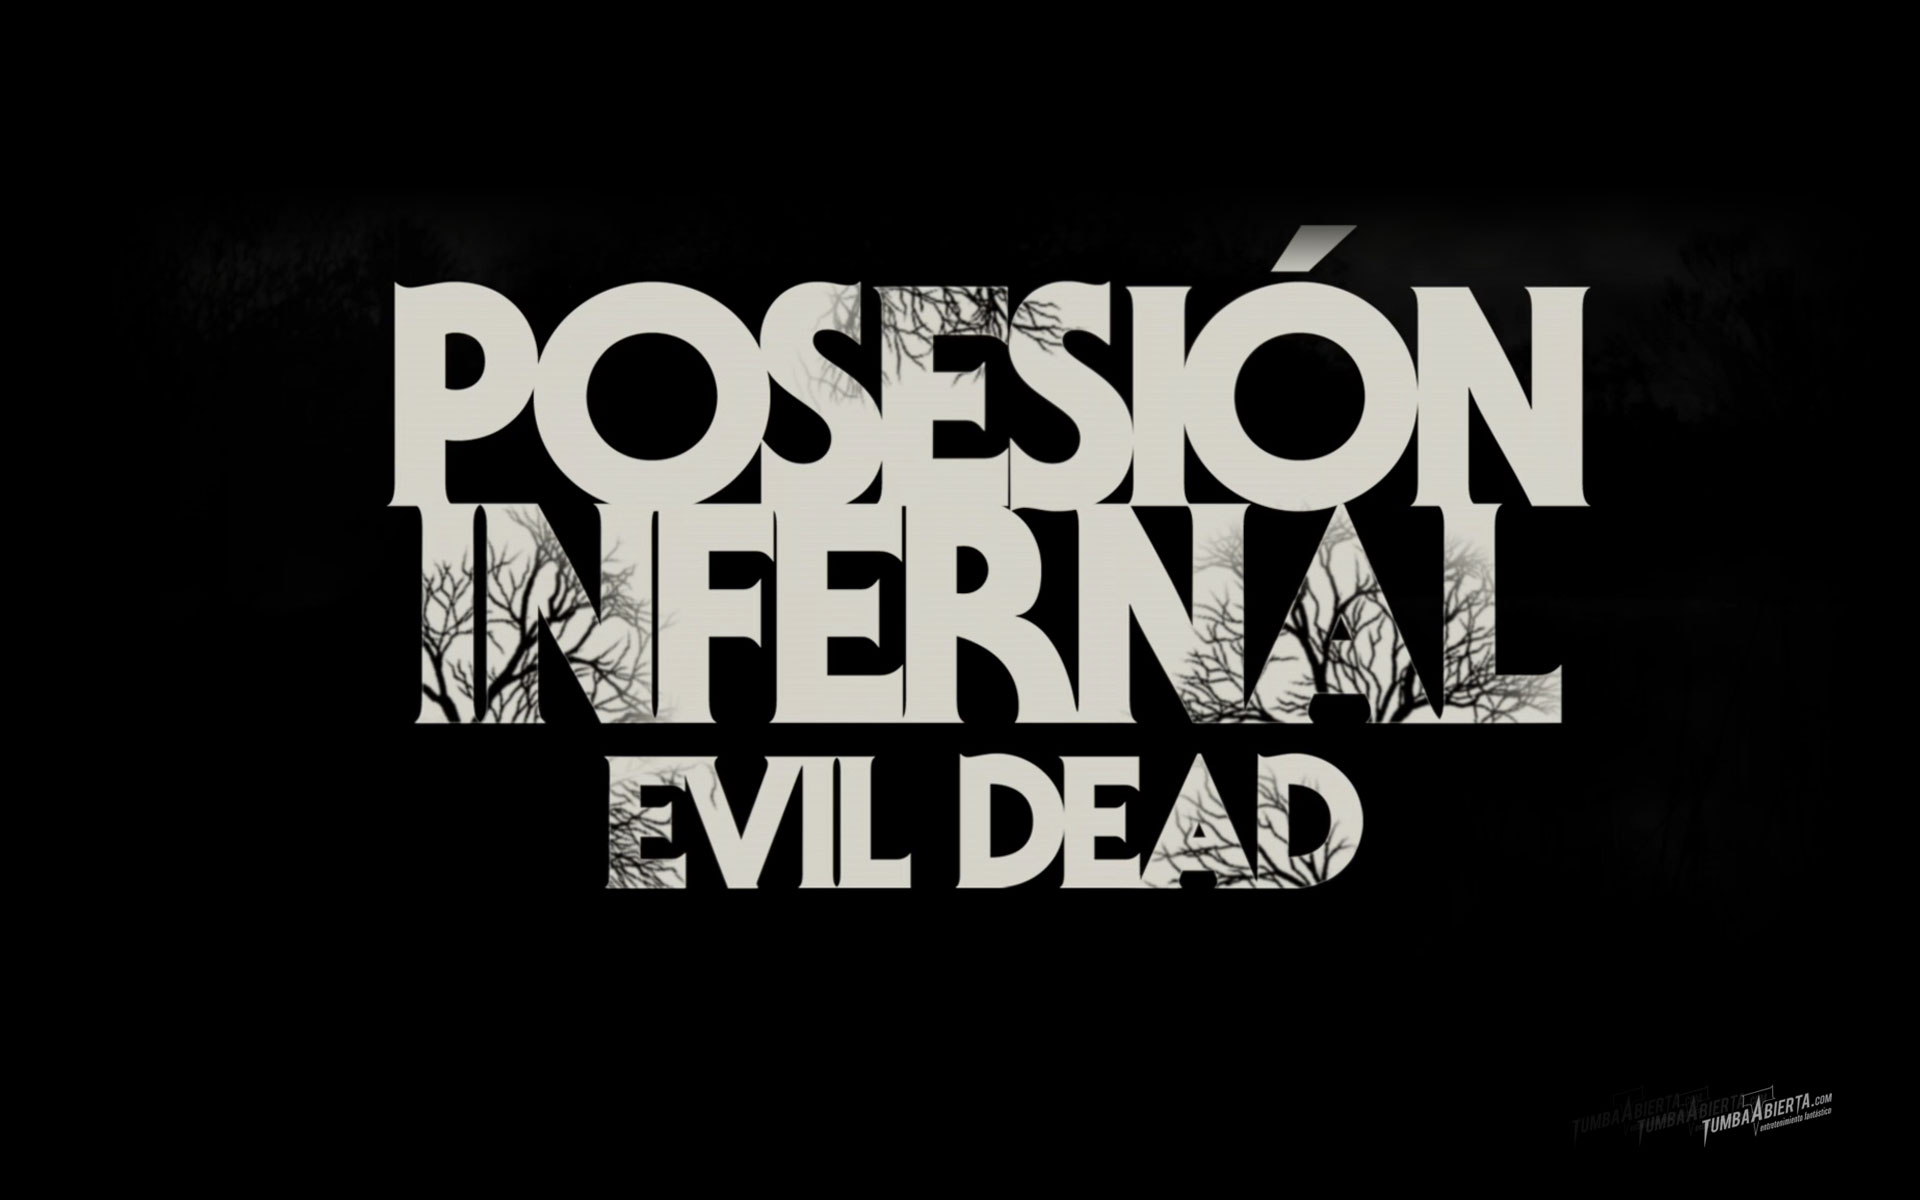 Wallpaper Posesión Infernal - Evil dead